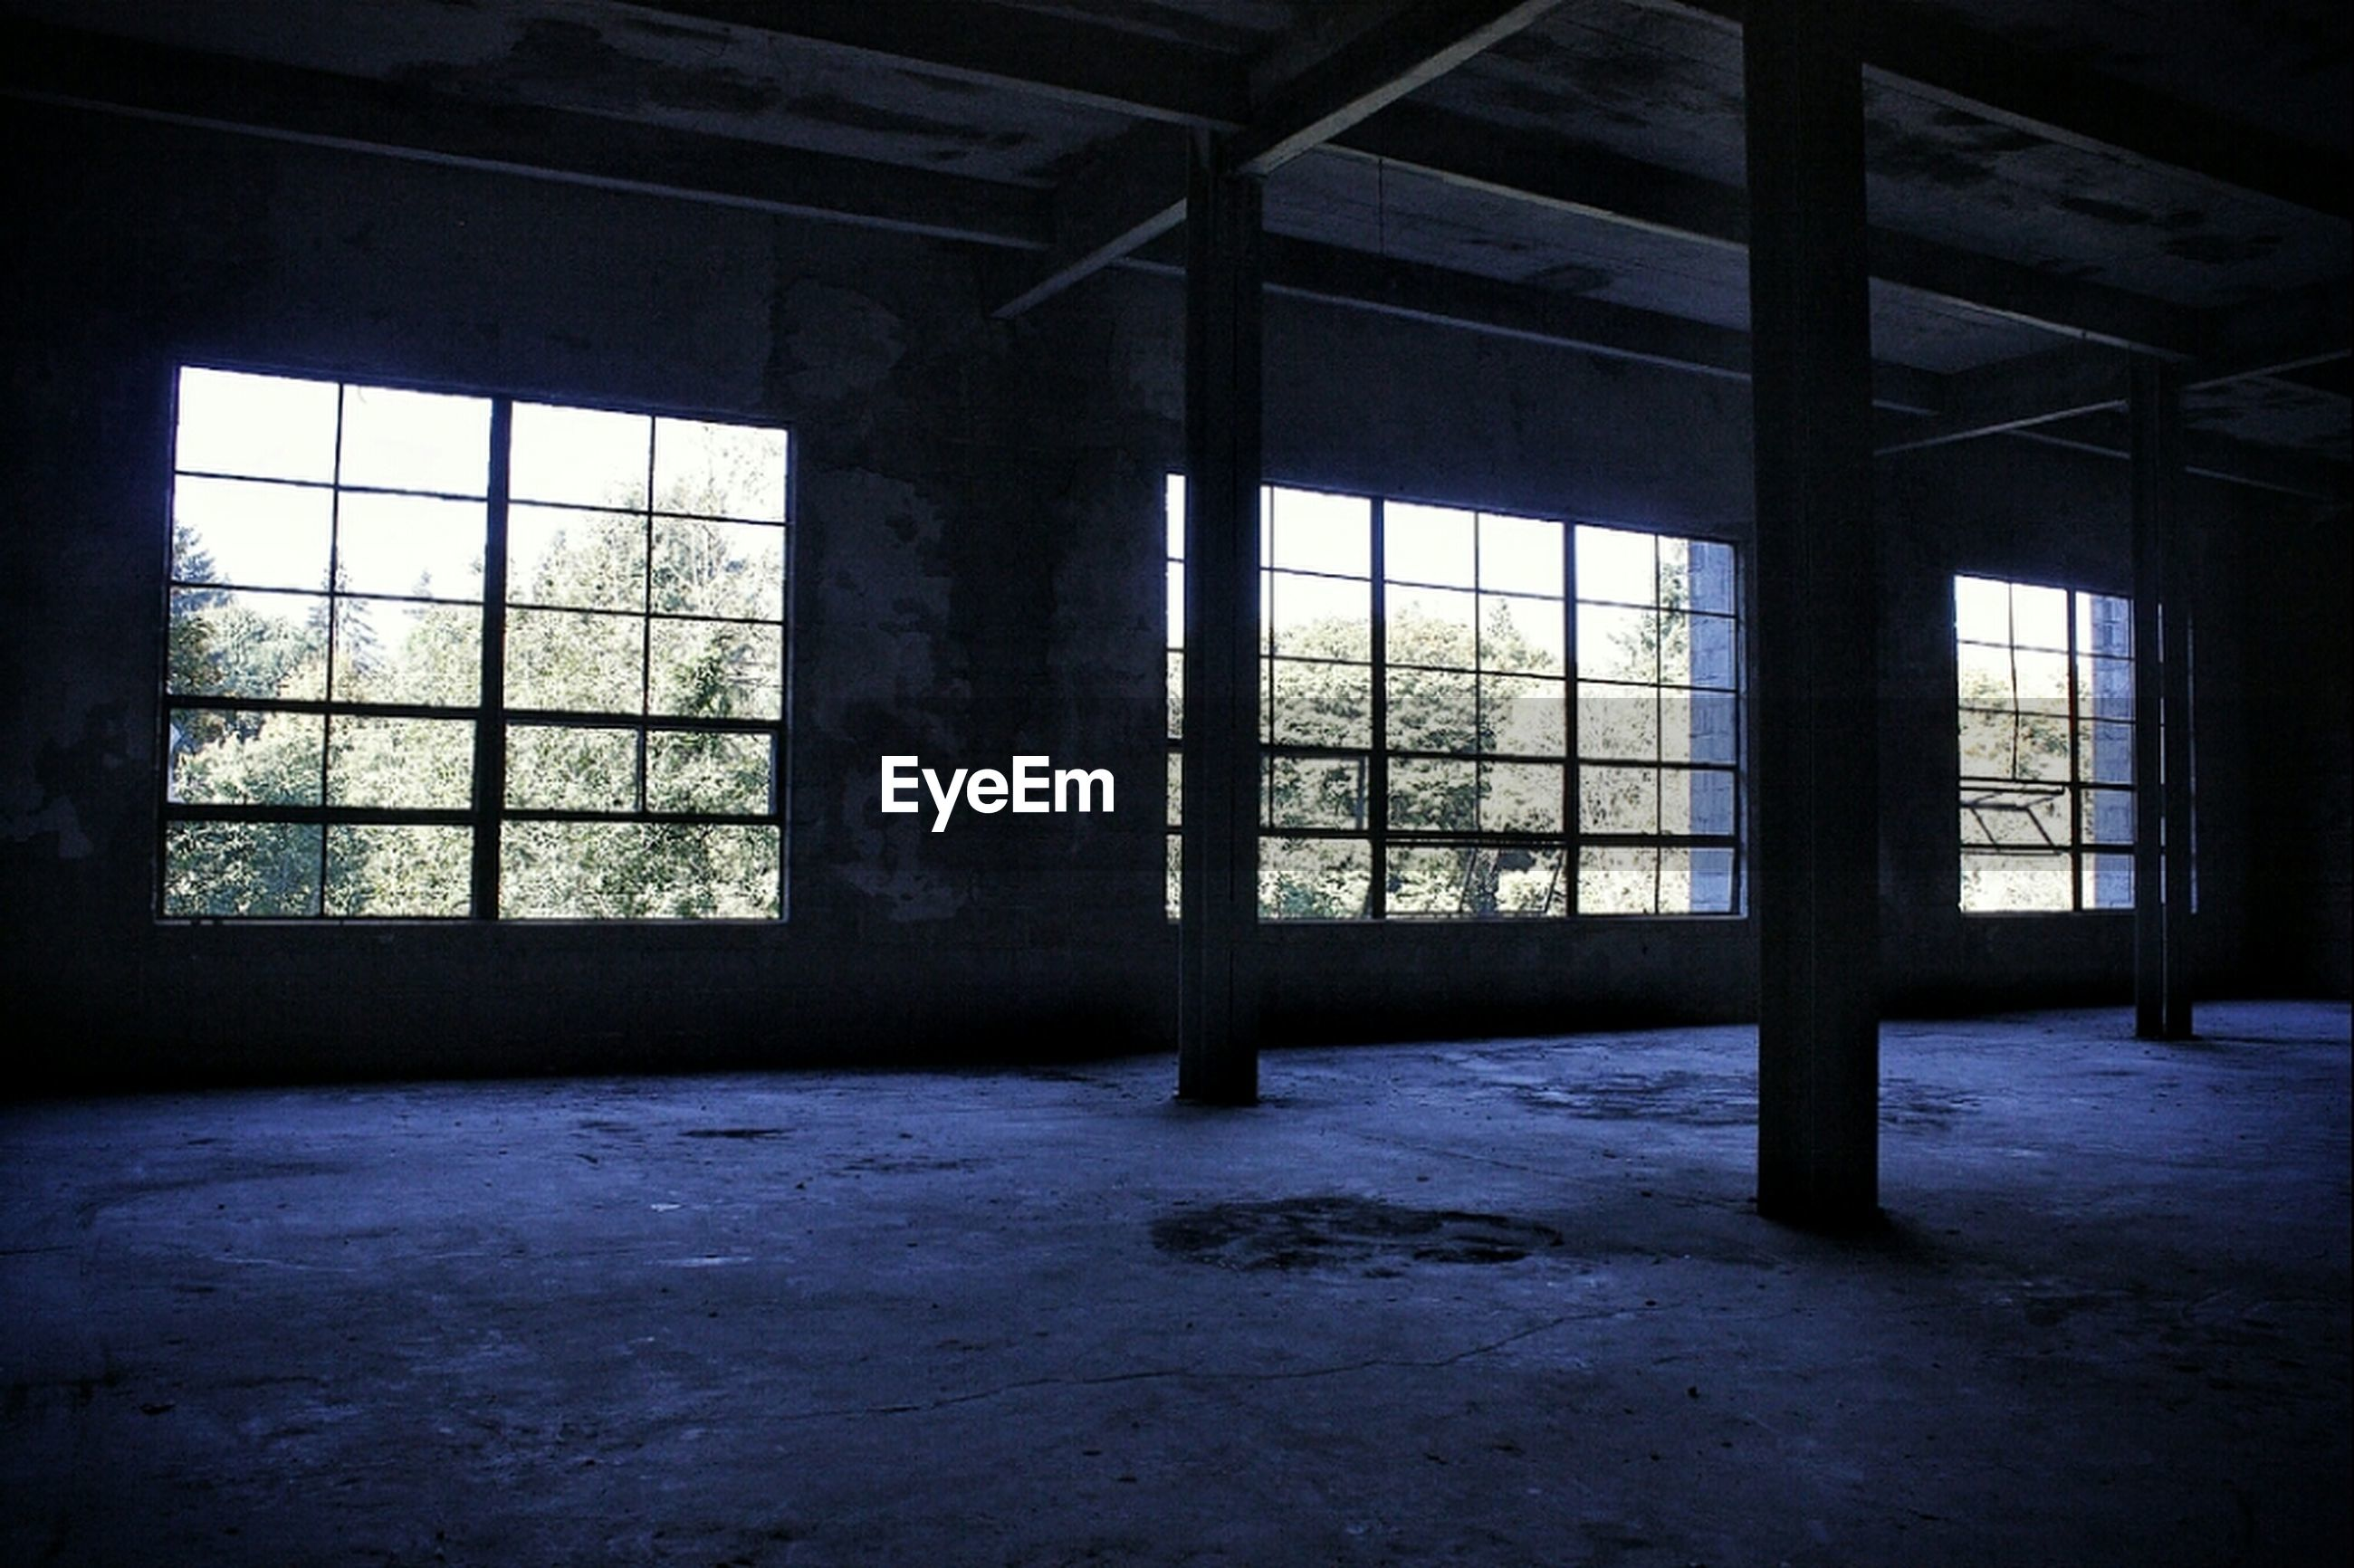 indoors, window, abandoned, interior, obsolete, architecture, built structure, glass - material, damaged, run-down, empty, ceiling, absence, flooring, deterioration, transparent, old, home interior, door, room